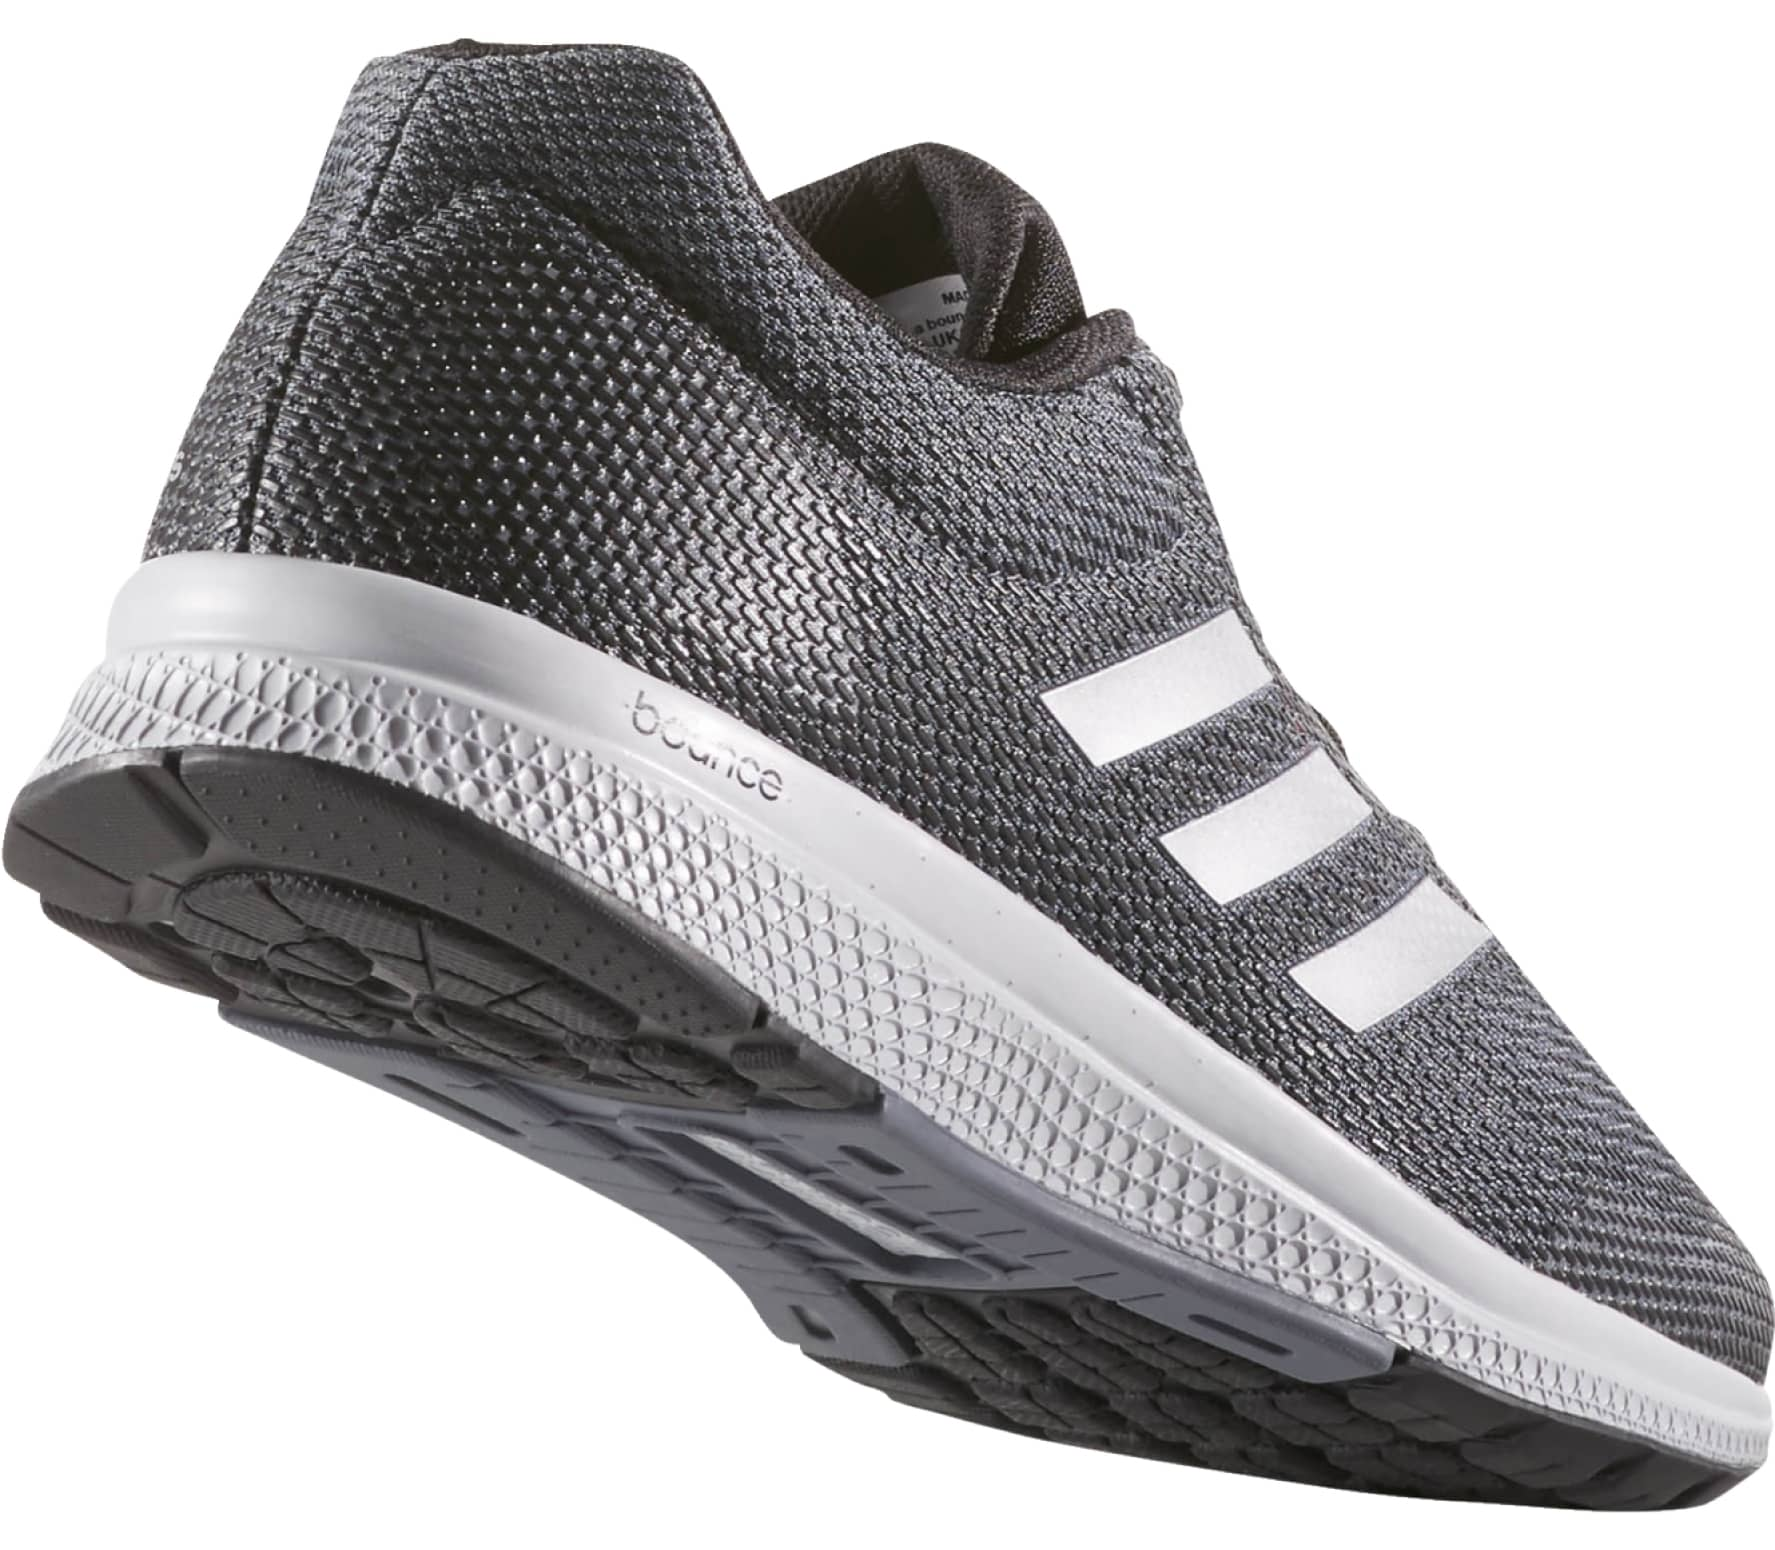 pretty nice 4975e b38e5 Adidas - Mana Bounce 2 Aramis womens running shoes (grey)